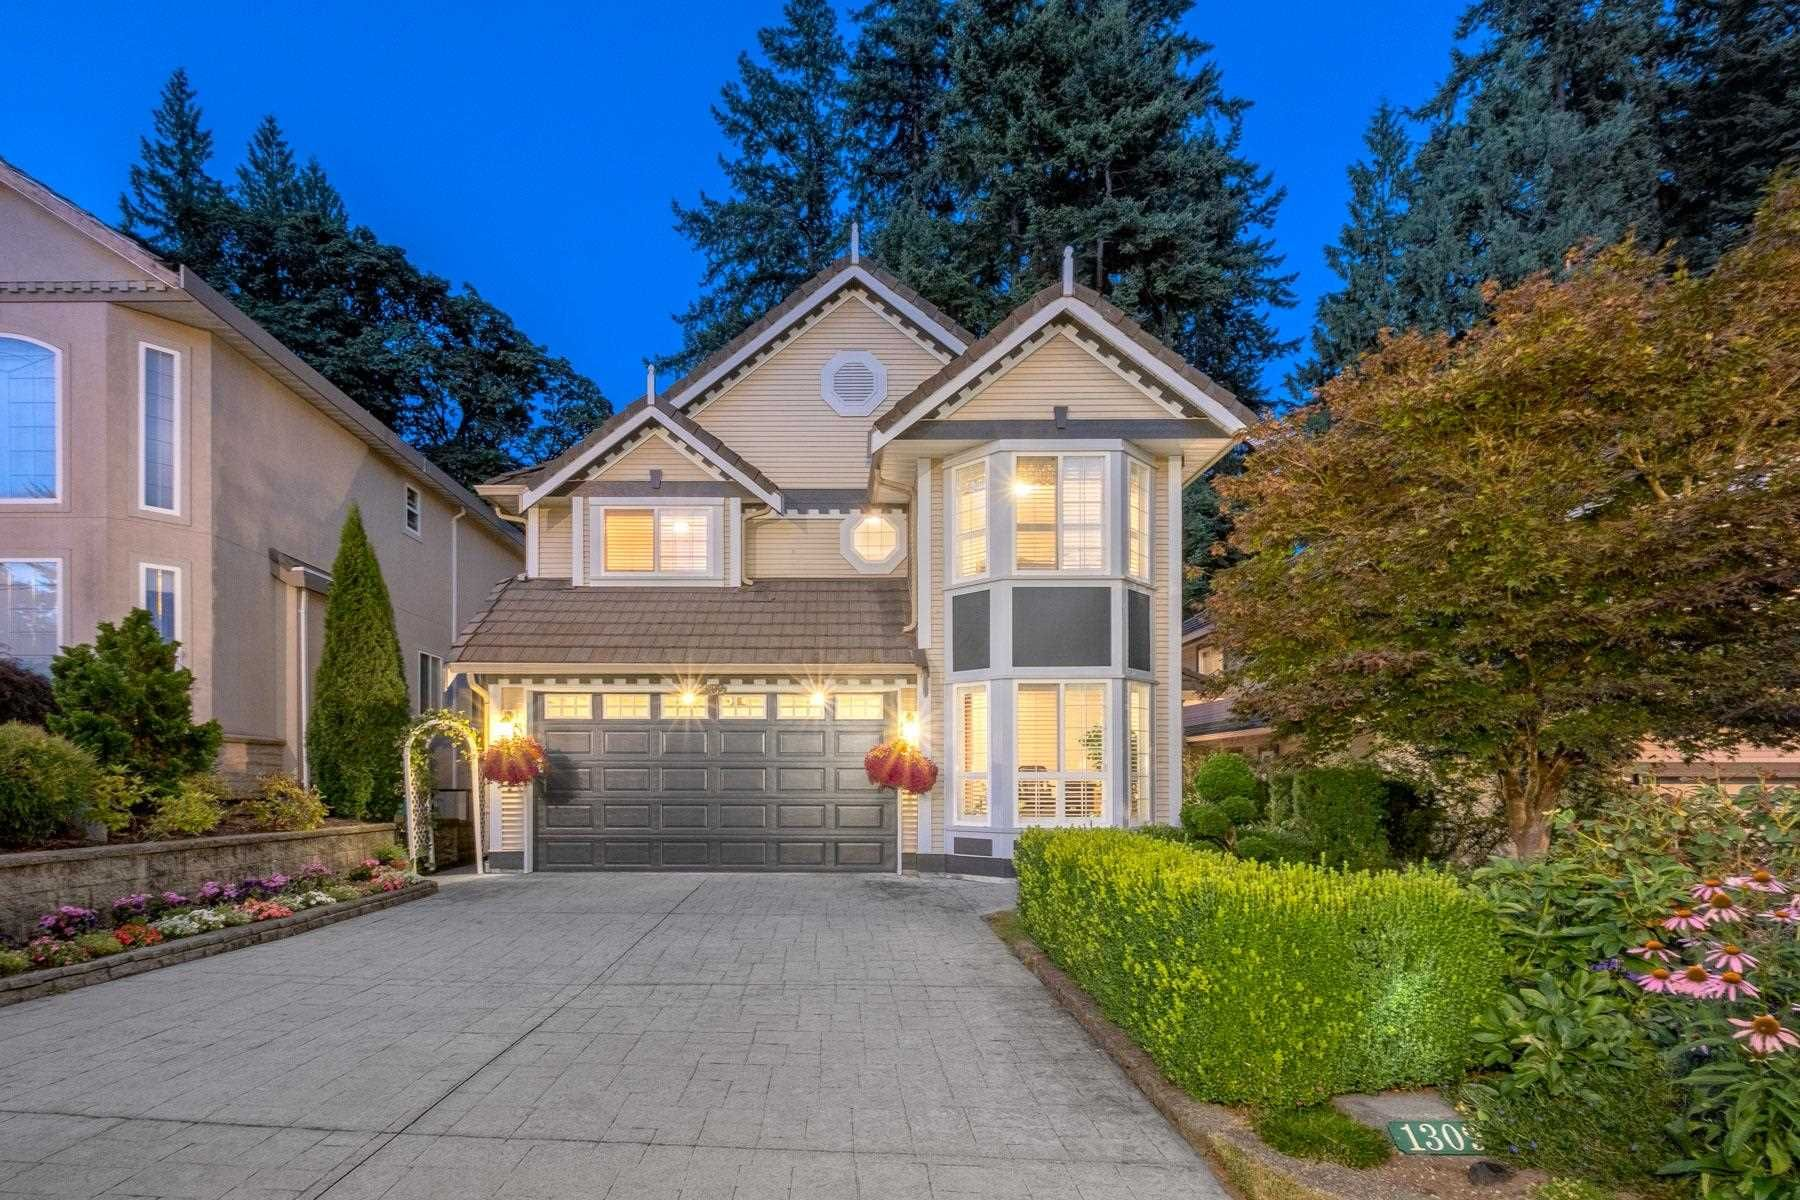 """Main Photo: 1309 FOREST Walk in Coquitlam: Burke Mountain House for sale in """"COBBLESTONE GATE"""" : MLS®# R2603853"""